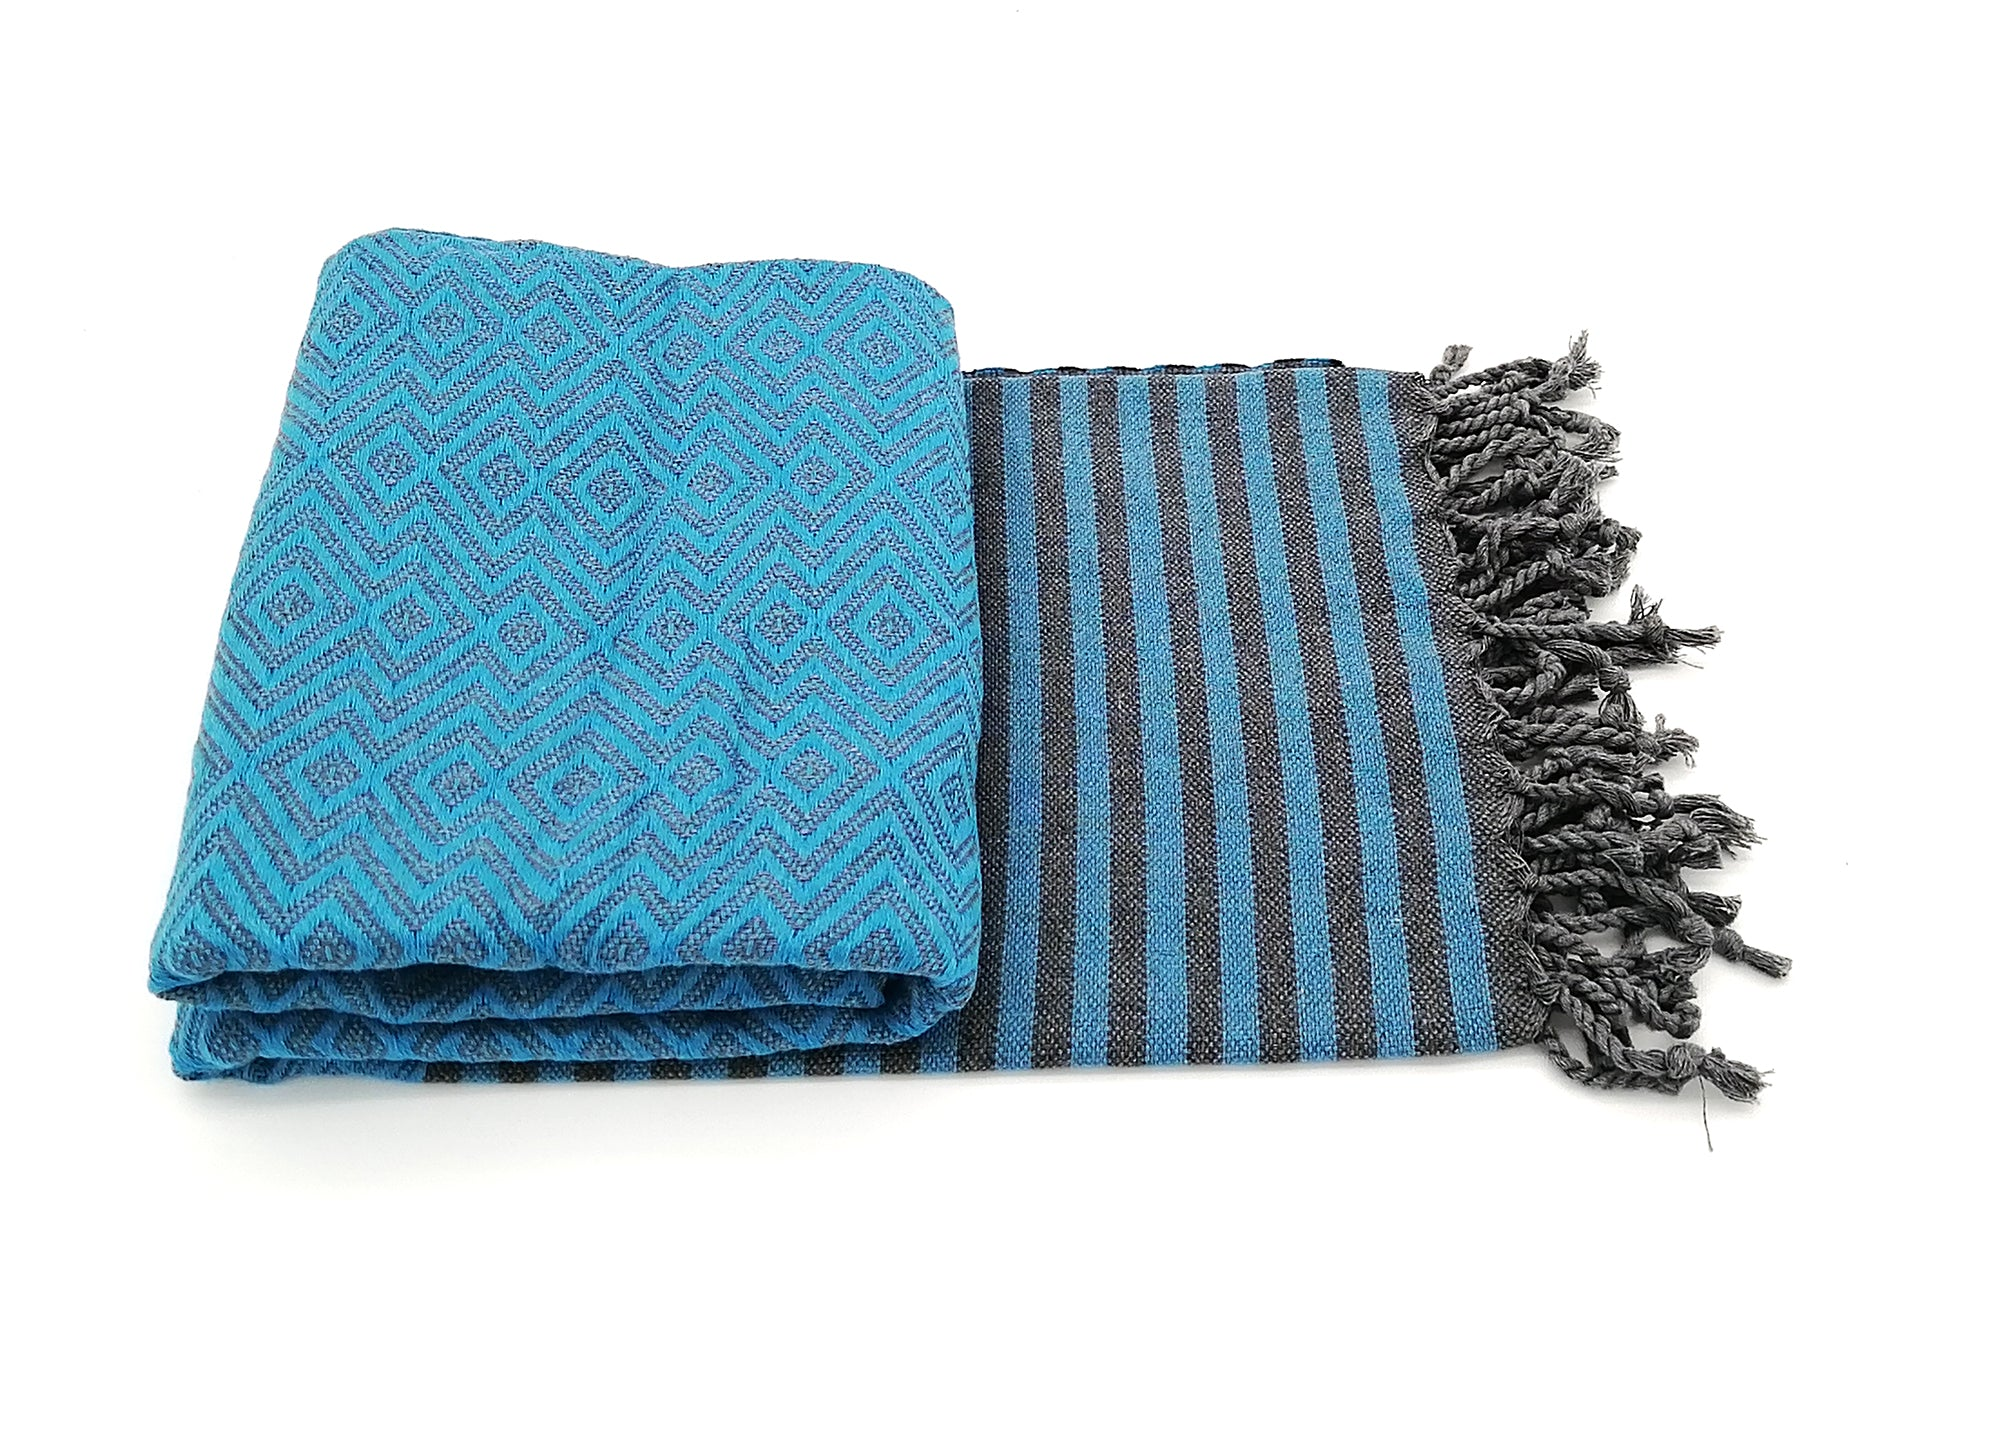 Turkish towel Sultan blue , lightweight, loomed with pure cotton in yarn-dyed stripes and edged with hand-knotted fringes at both ends.